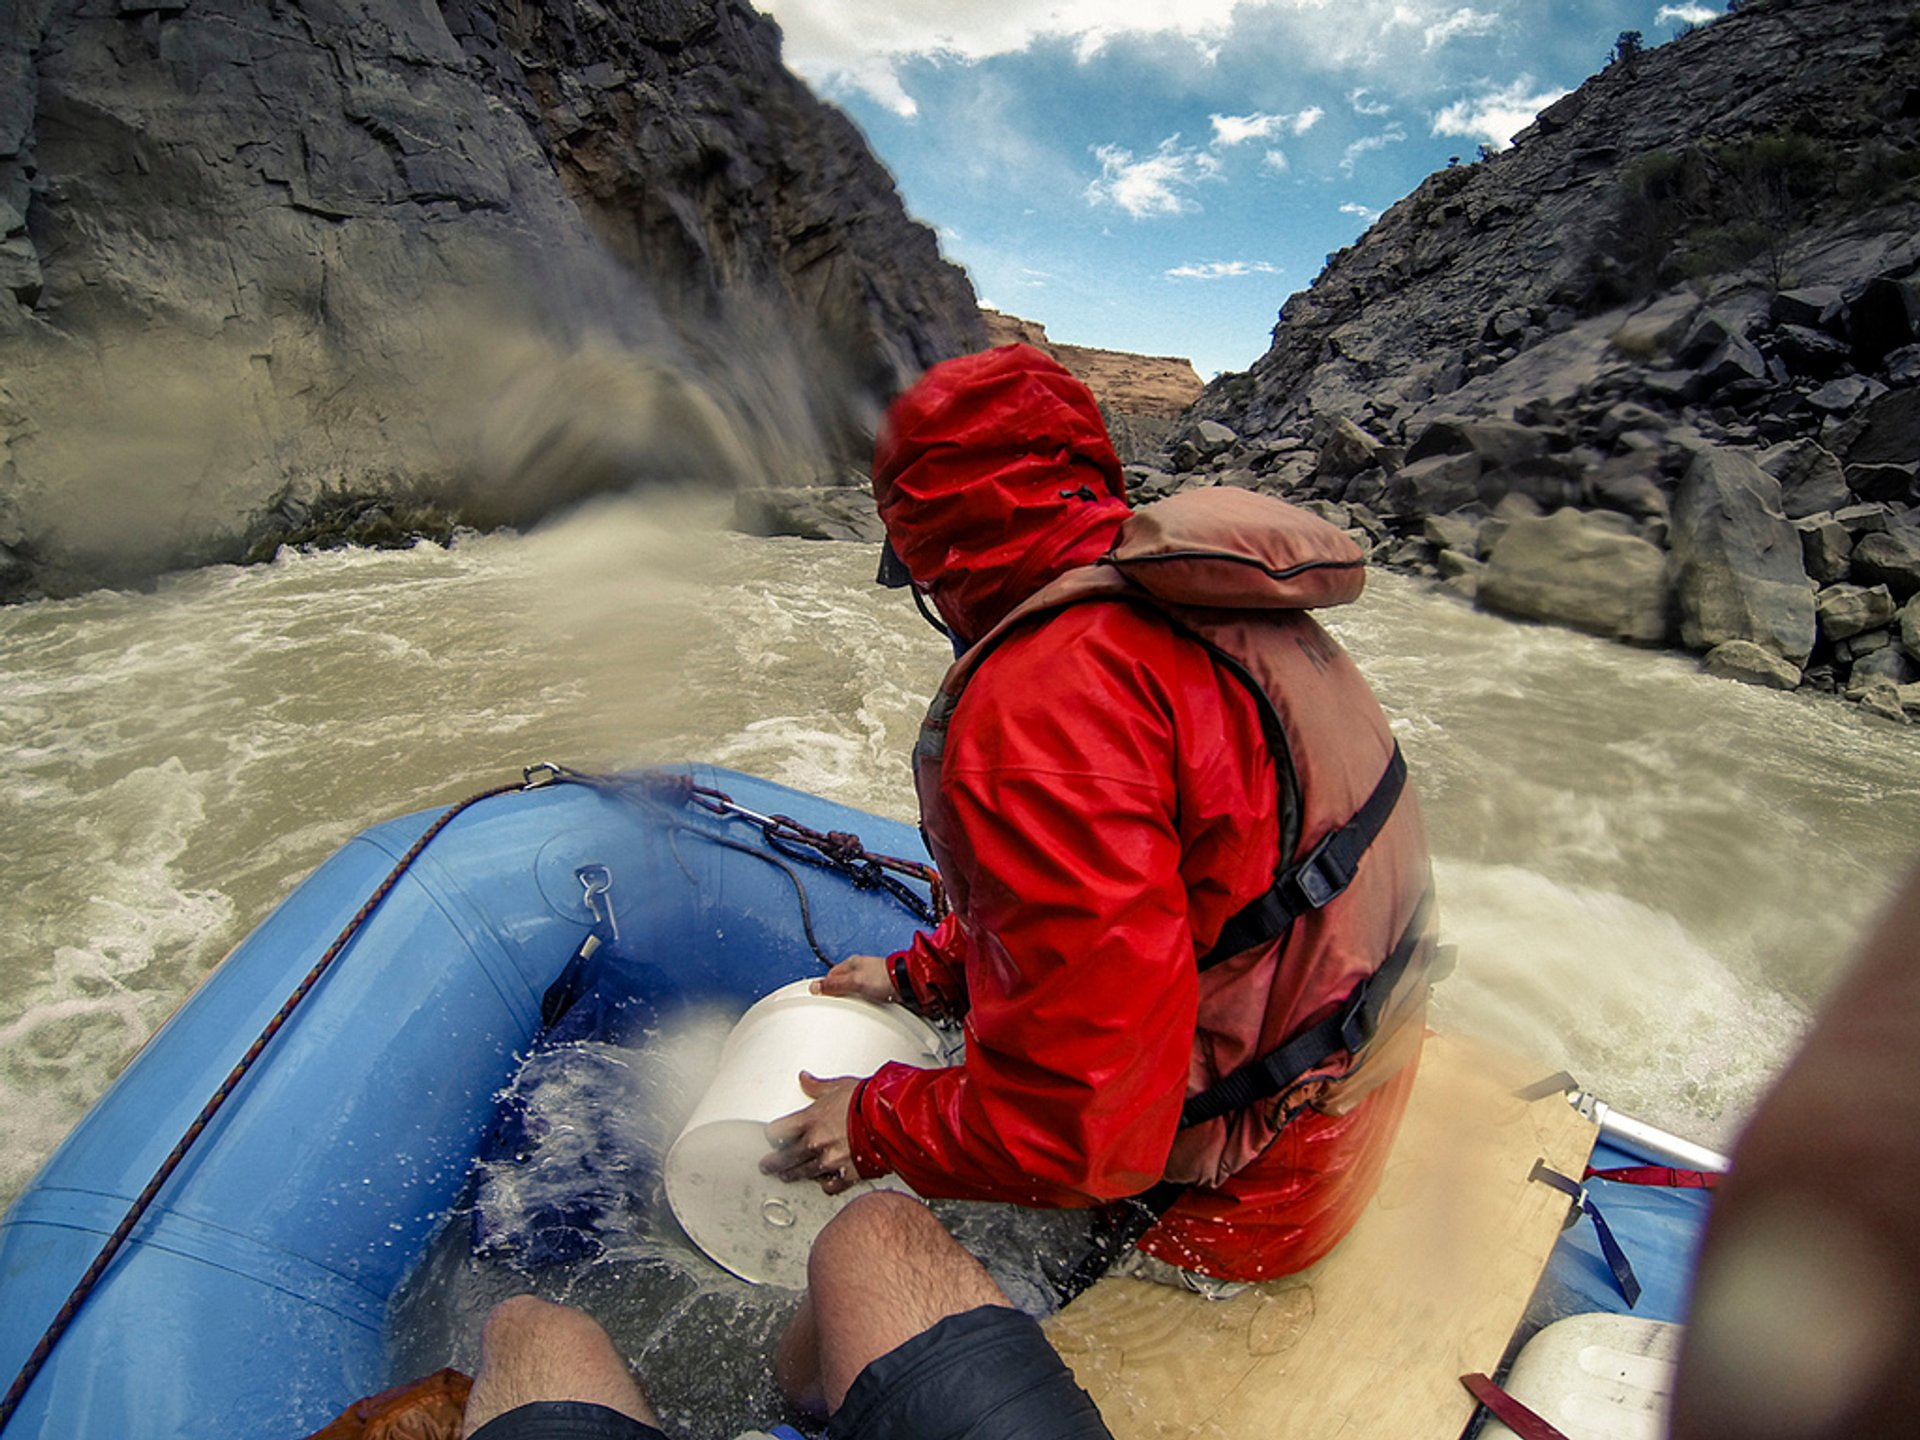 Rafting Season in Utah 2019 - Best Time